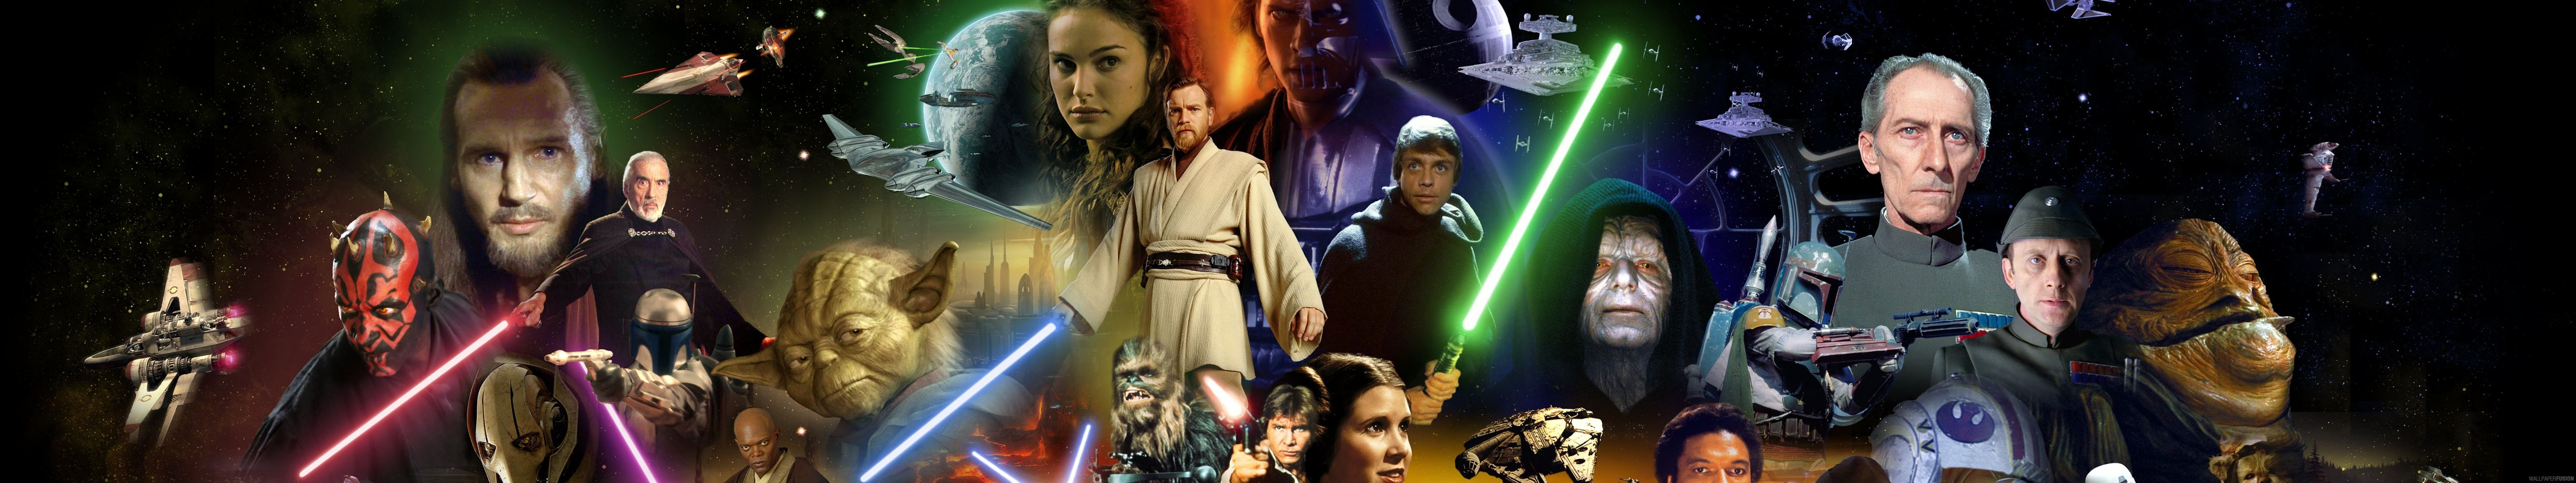 Star Wars 5760x1080 Wallpapers Top Free Star Wars 5760x1080